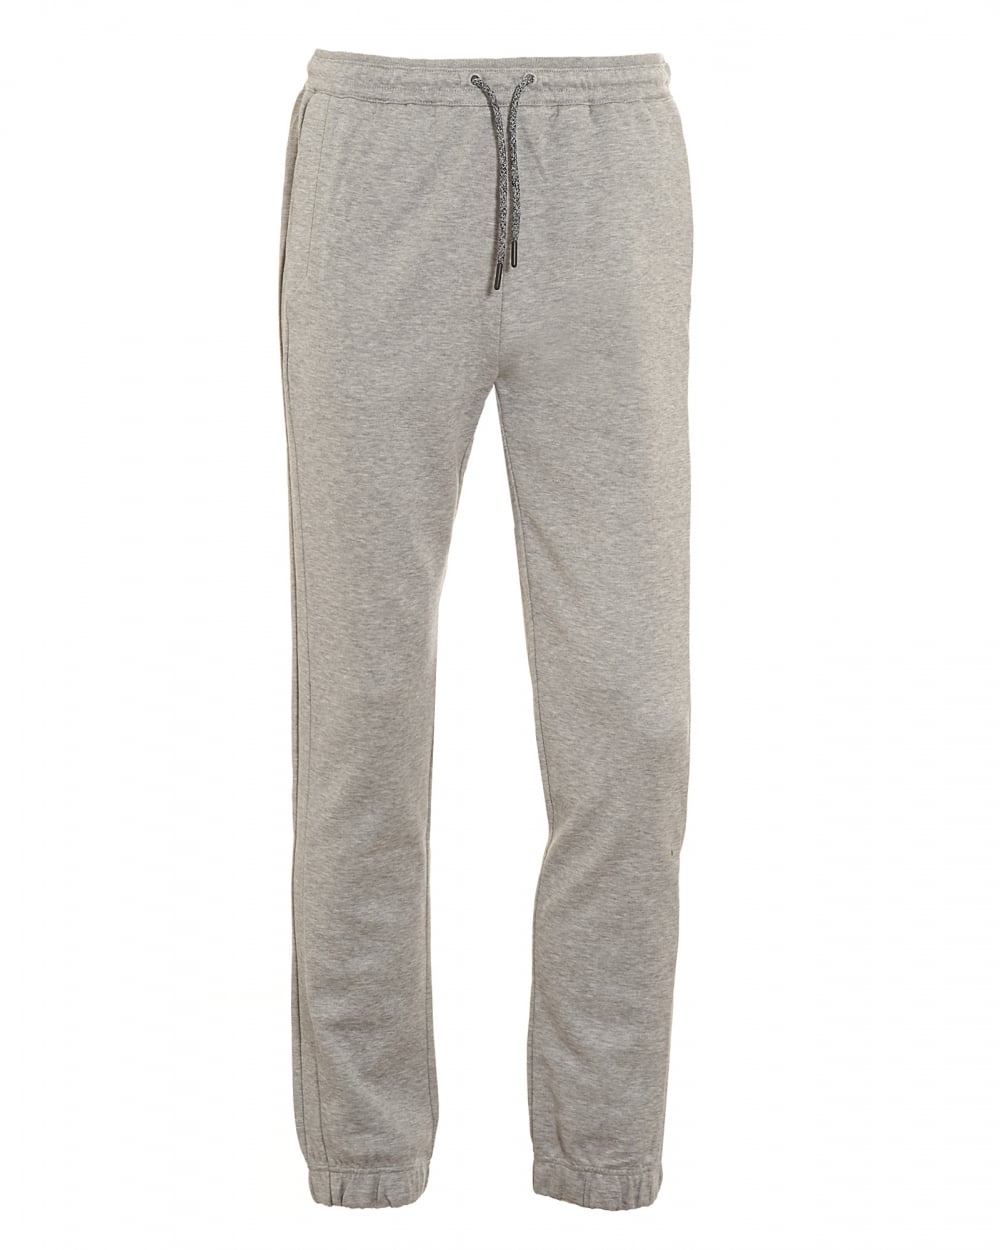 Mens Hadiko Tracksuit Bottoms, Grey Sweat Pants